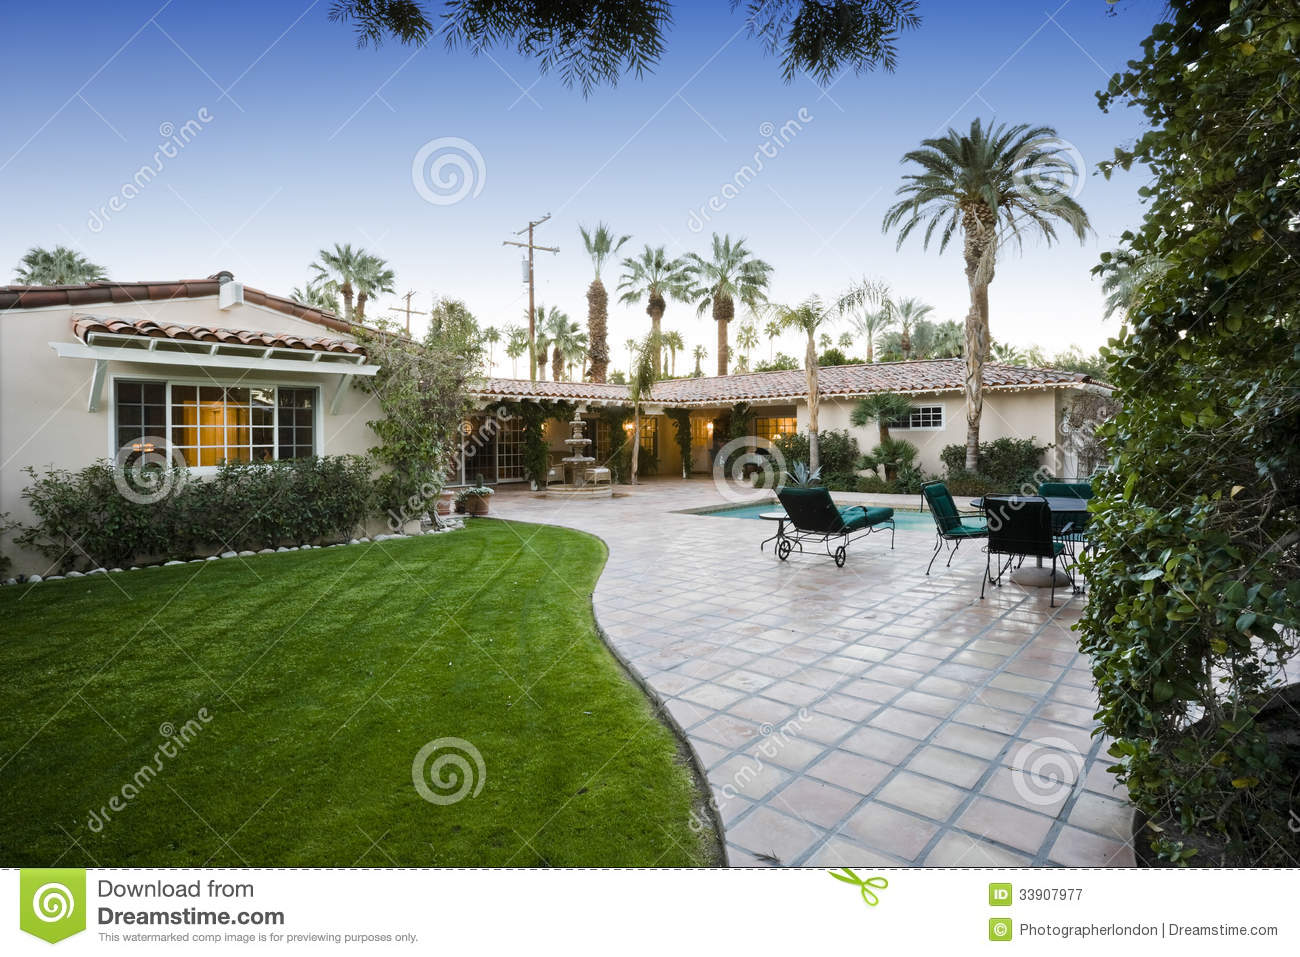 Patio With Pool In Front Of Modern House Royalty Free